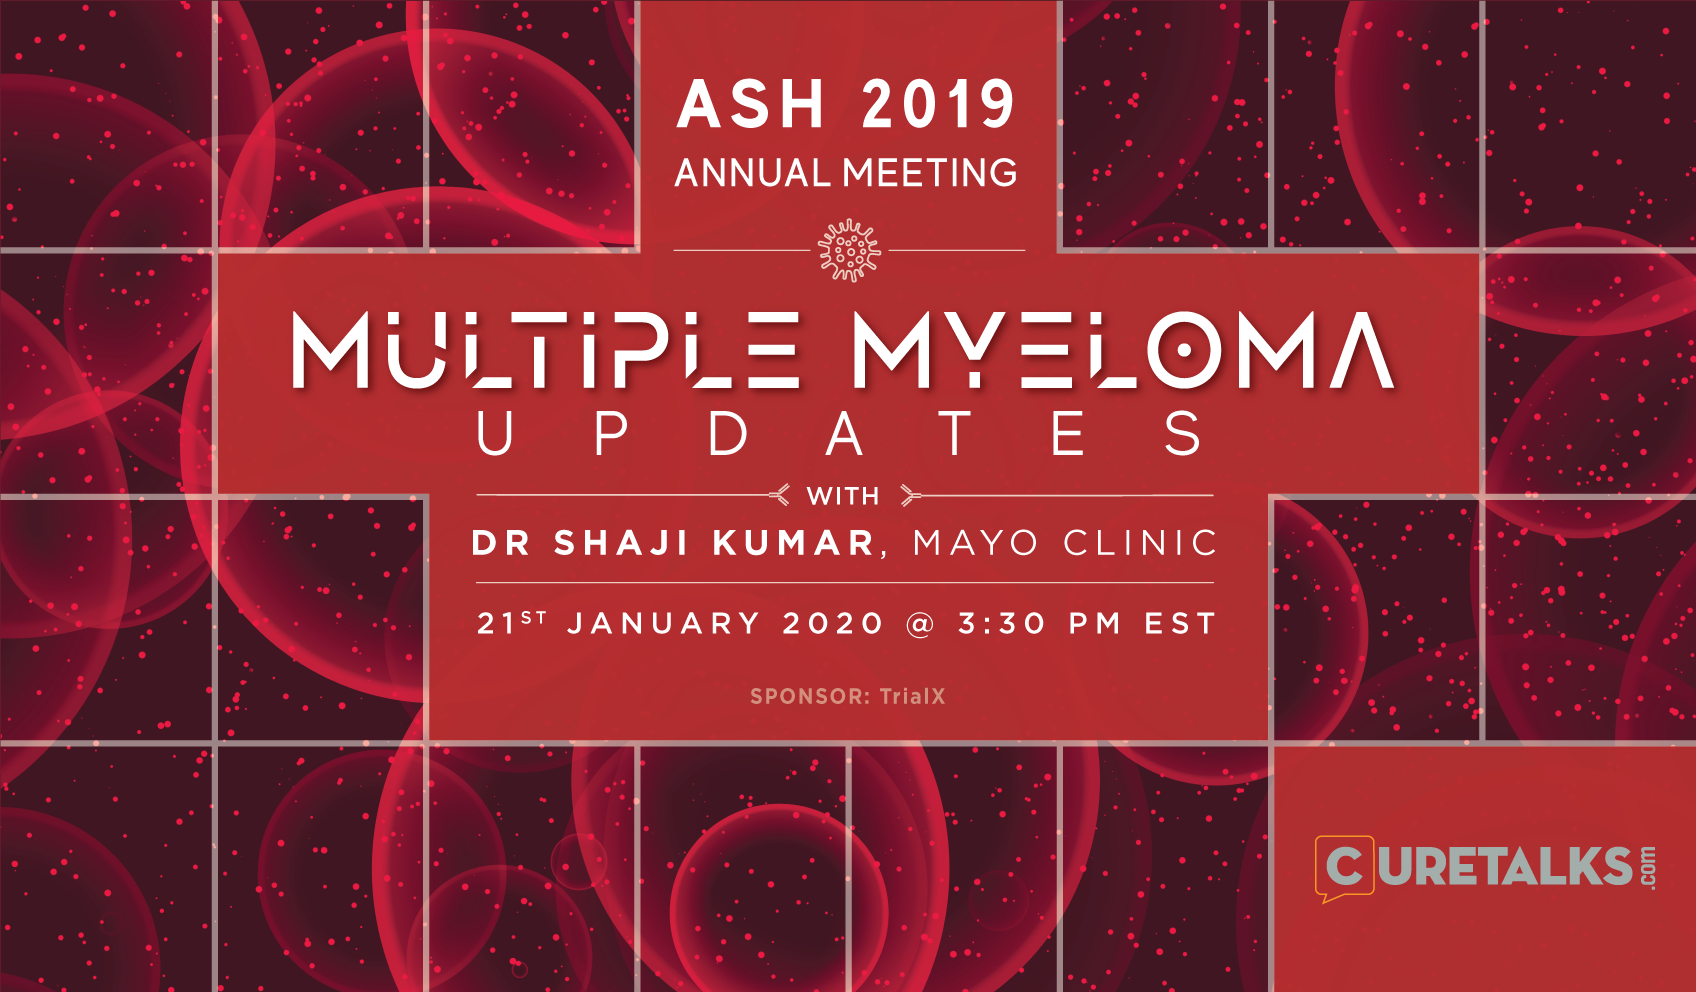 ASH 2019 Annual Meeting Multiple Myeloma Updates